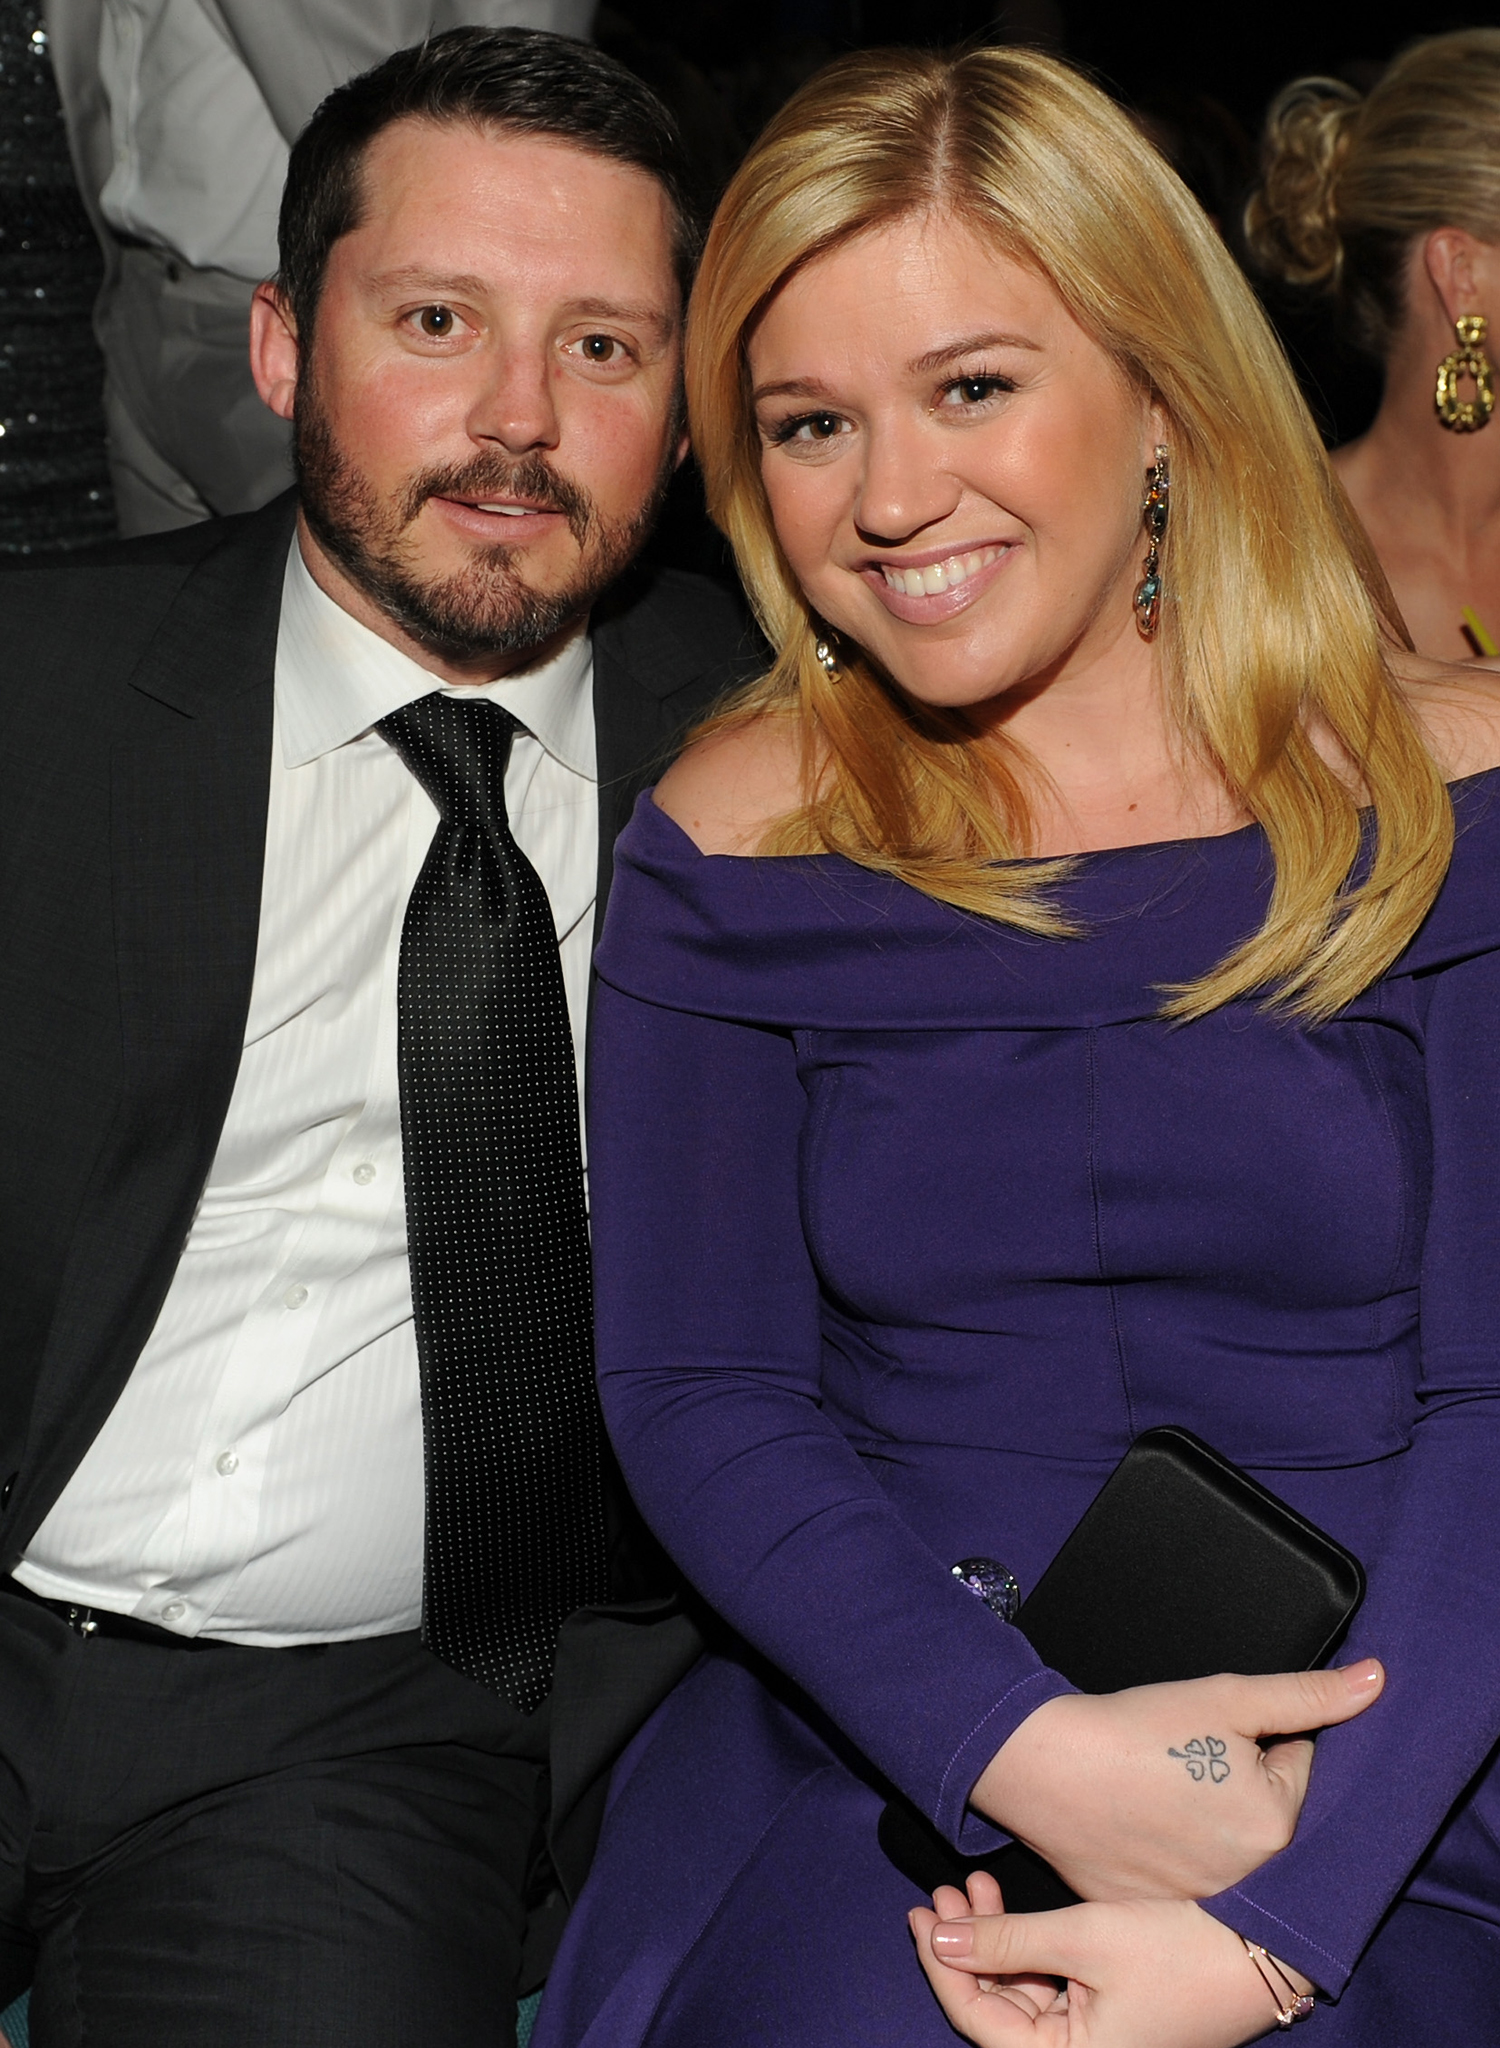 Kelly Clarkson and Brandon Blackstock (Getty Images)